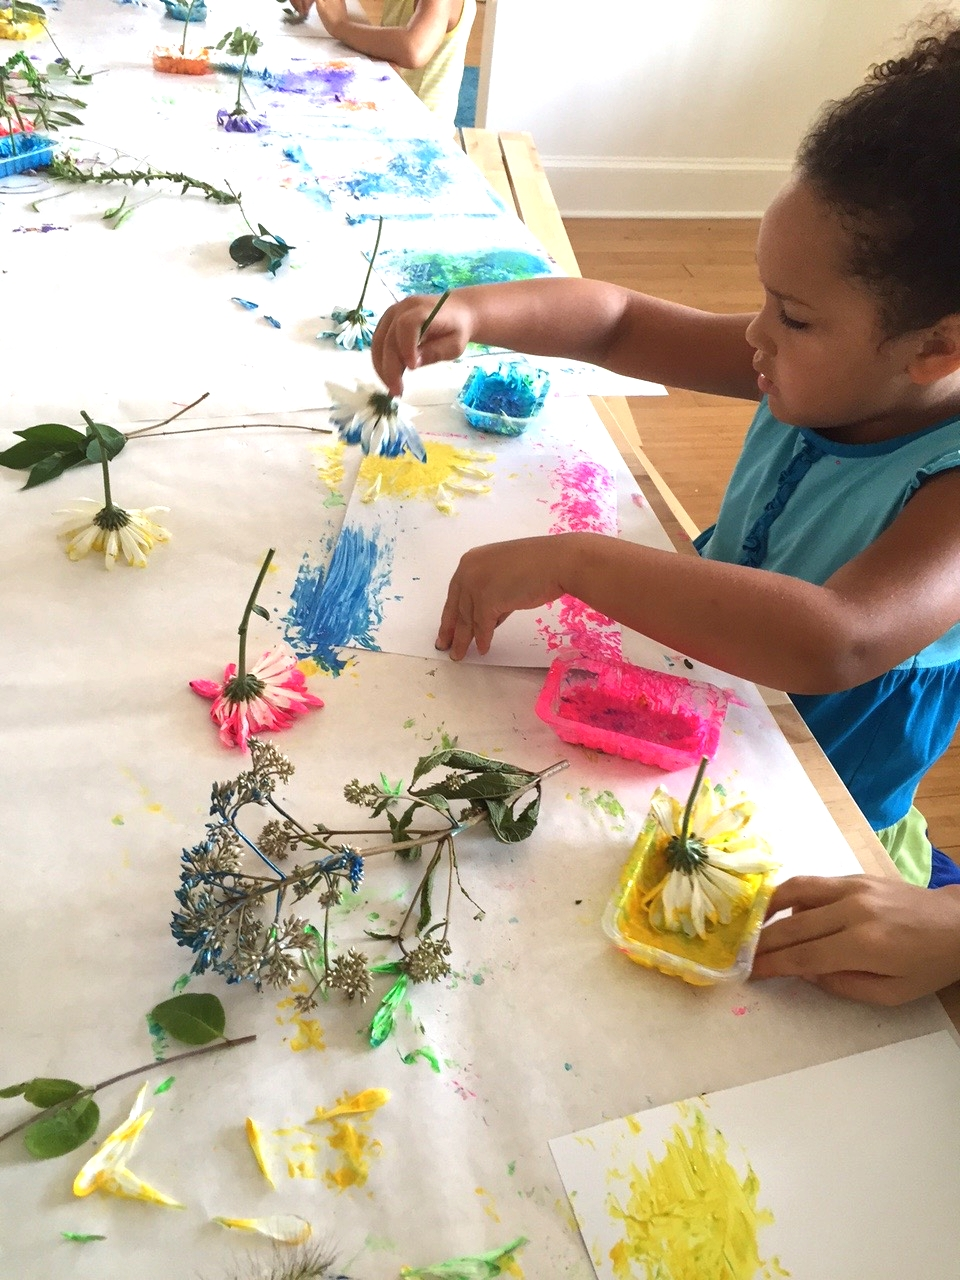 Painting with flowers.